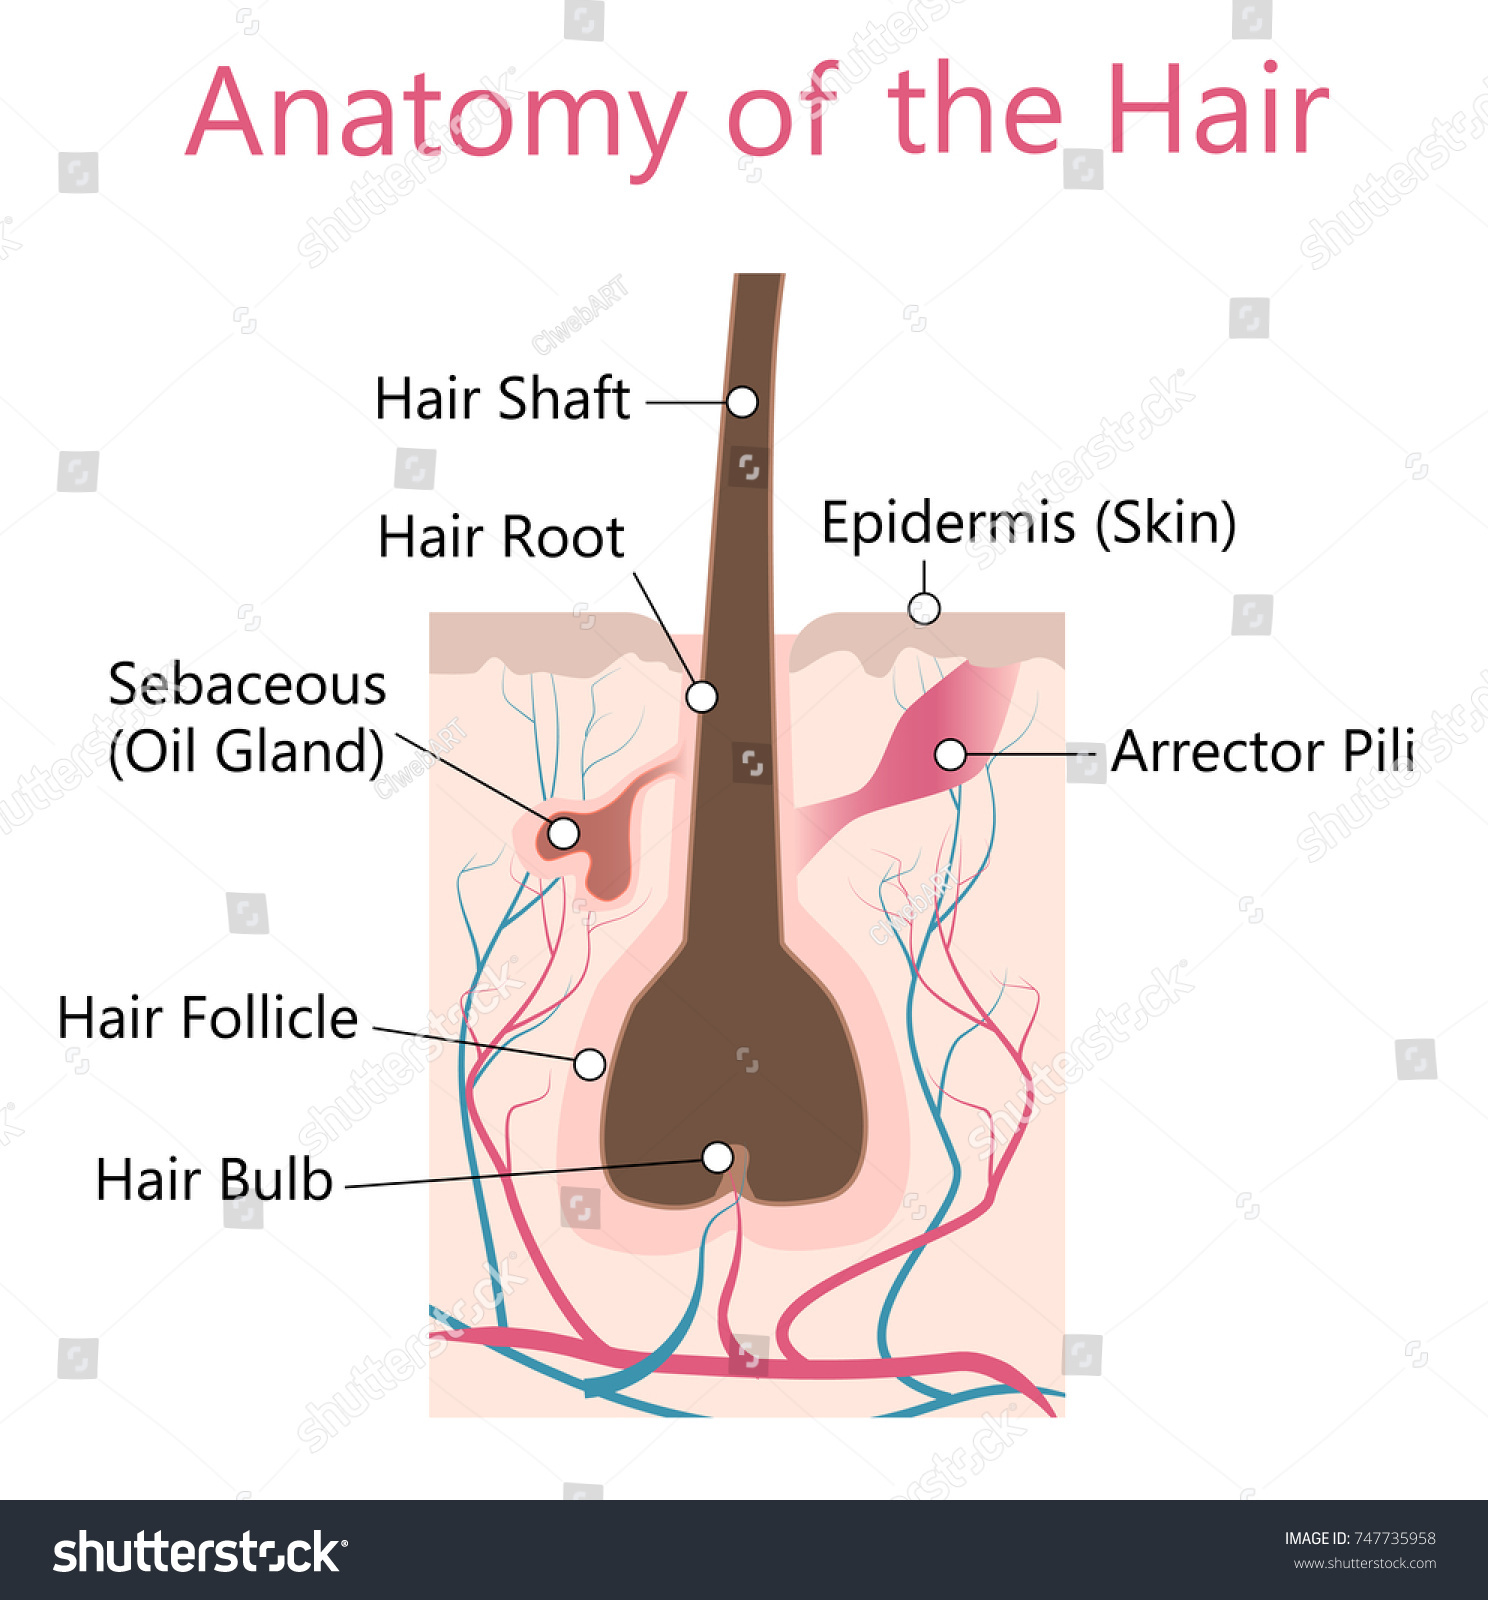 Hair Anatomy Stock Vector (Royalty Free) 747735958 - Shutterstock